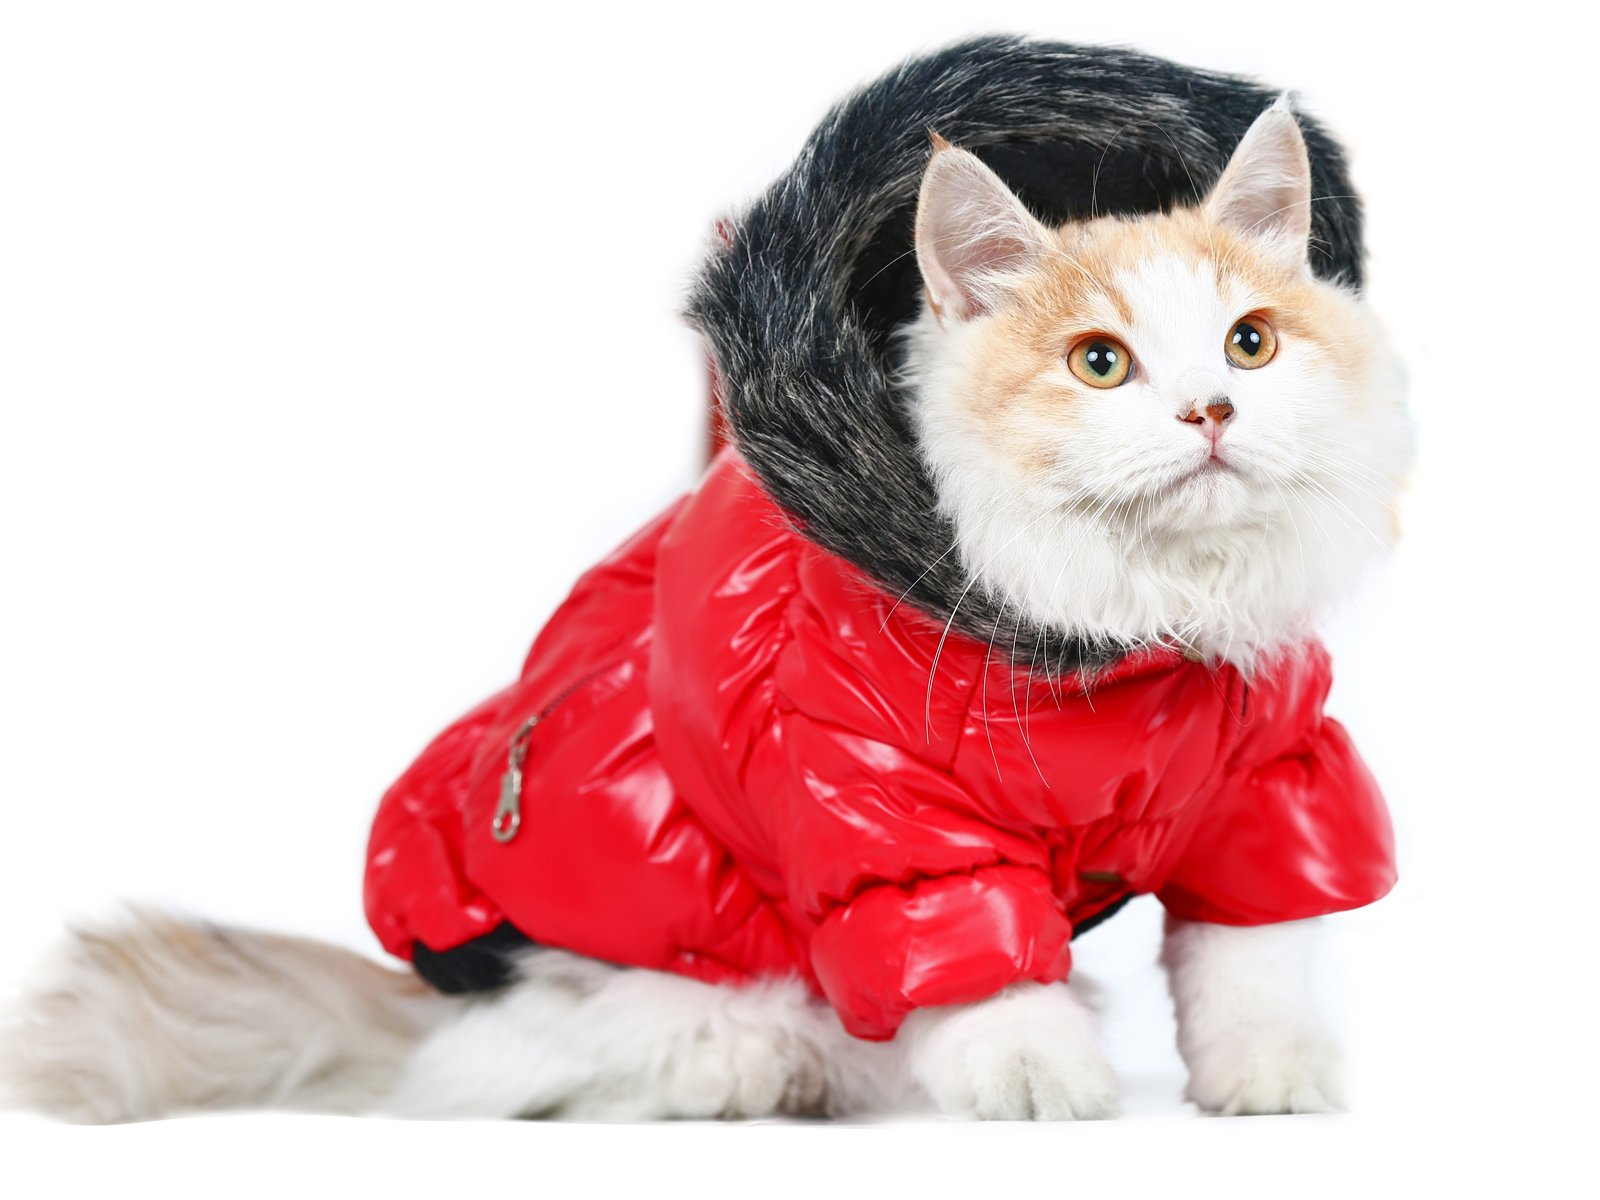 PLS Pet Halloween Skiing Jacket for Pets, Jacket for Dogs, Jacket for Cat, Winter Dog Coat, Red, Small, Dog Costume, Cat Costume, Protects from Cold Weather, Luxurious and, Halloween Sale